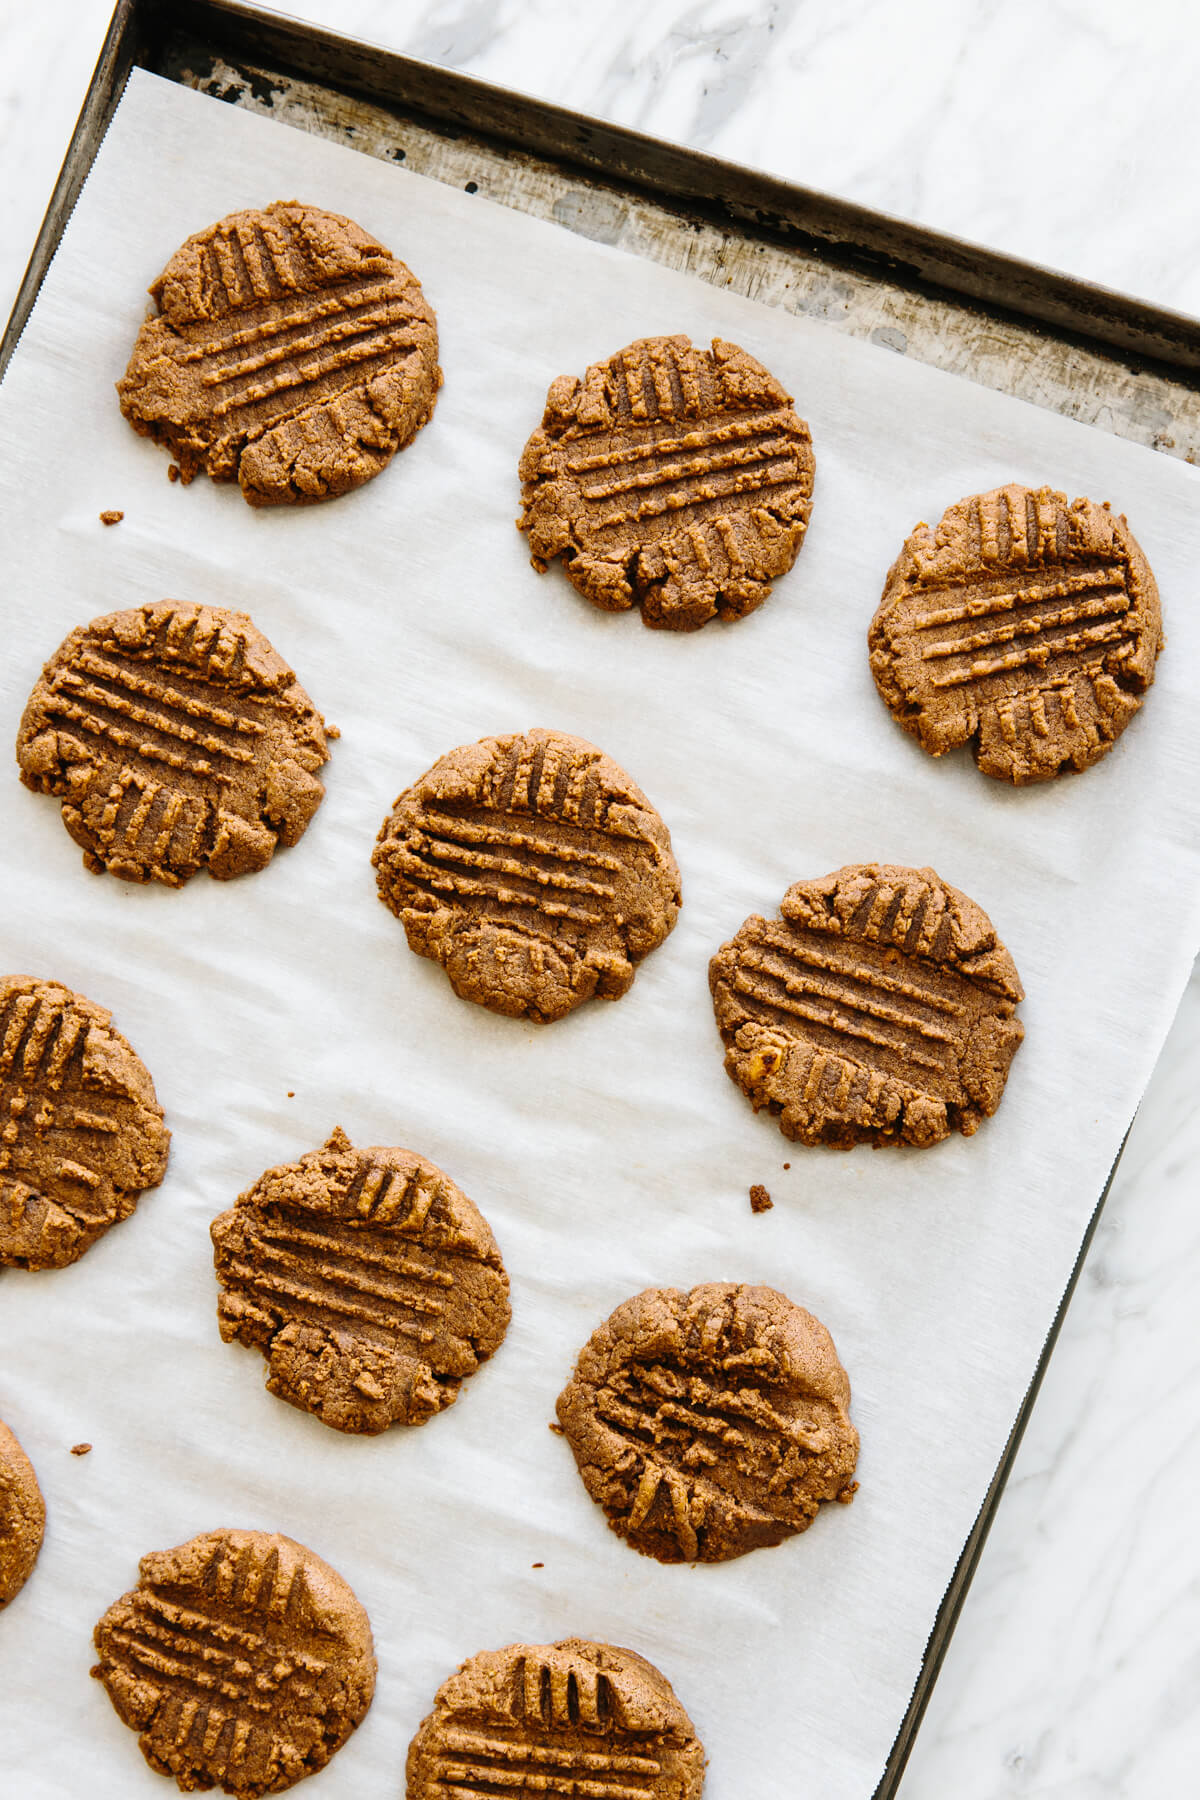 Almond butter cookies on a baking tray.